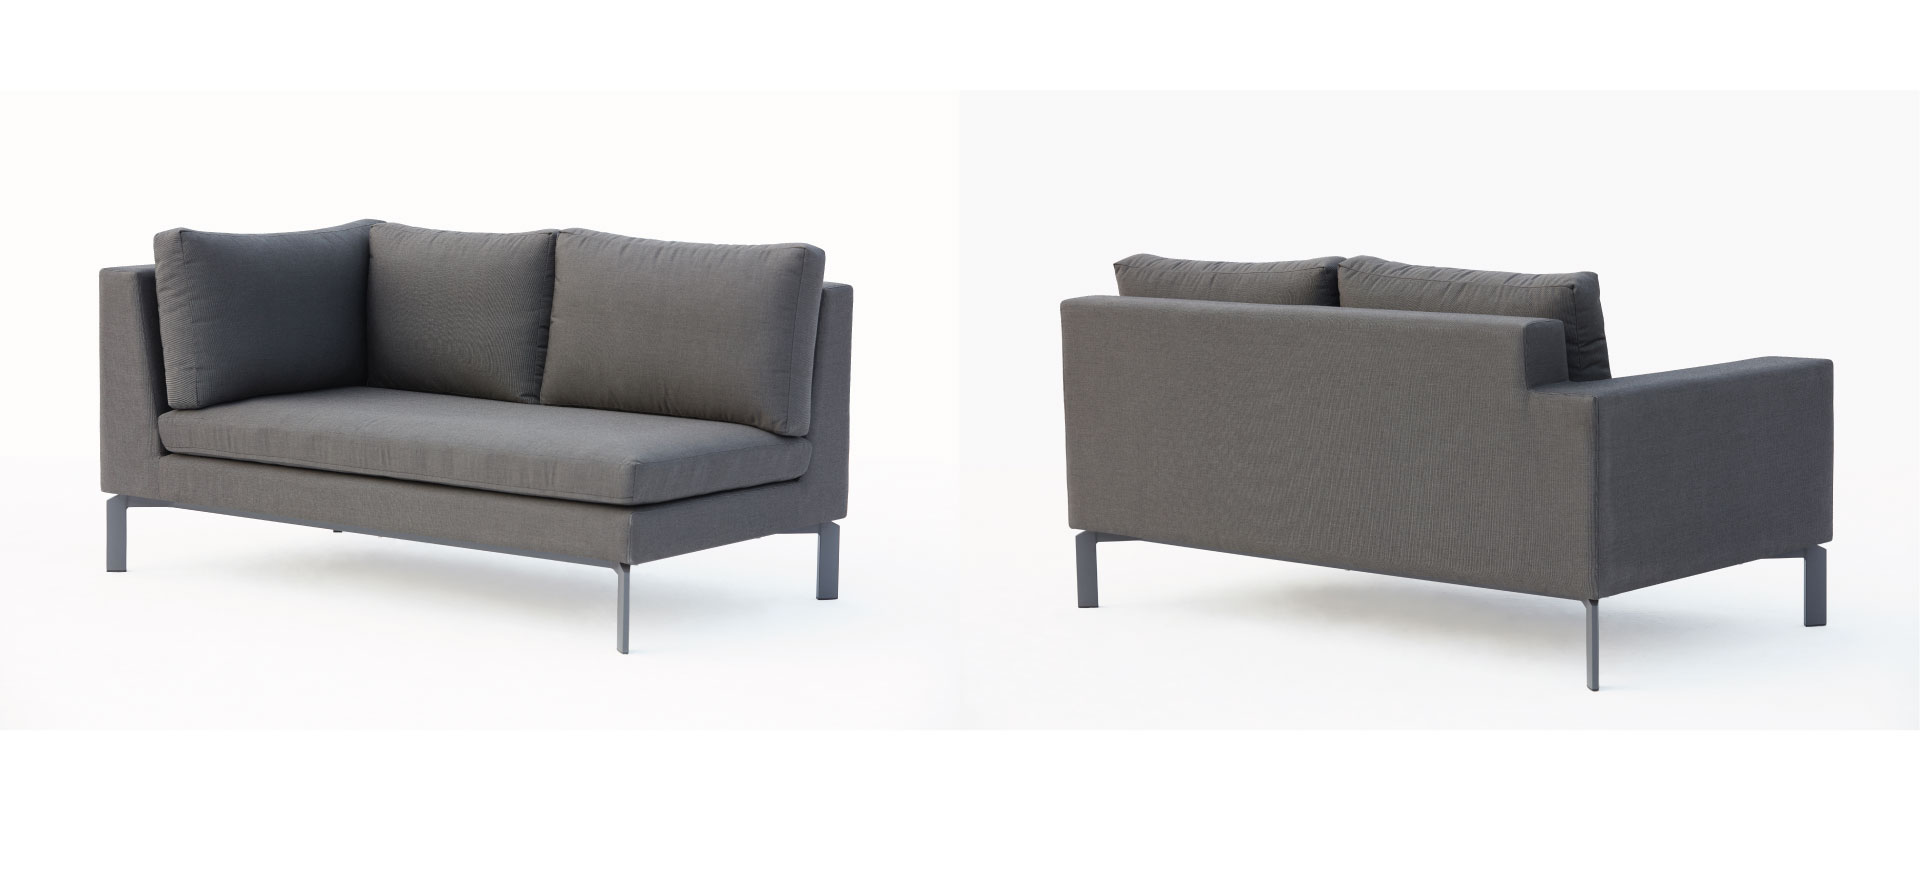 Zambezi Outdoor Lounge Sofa